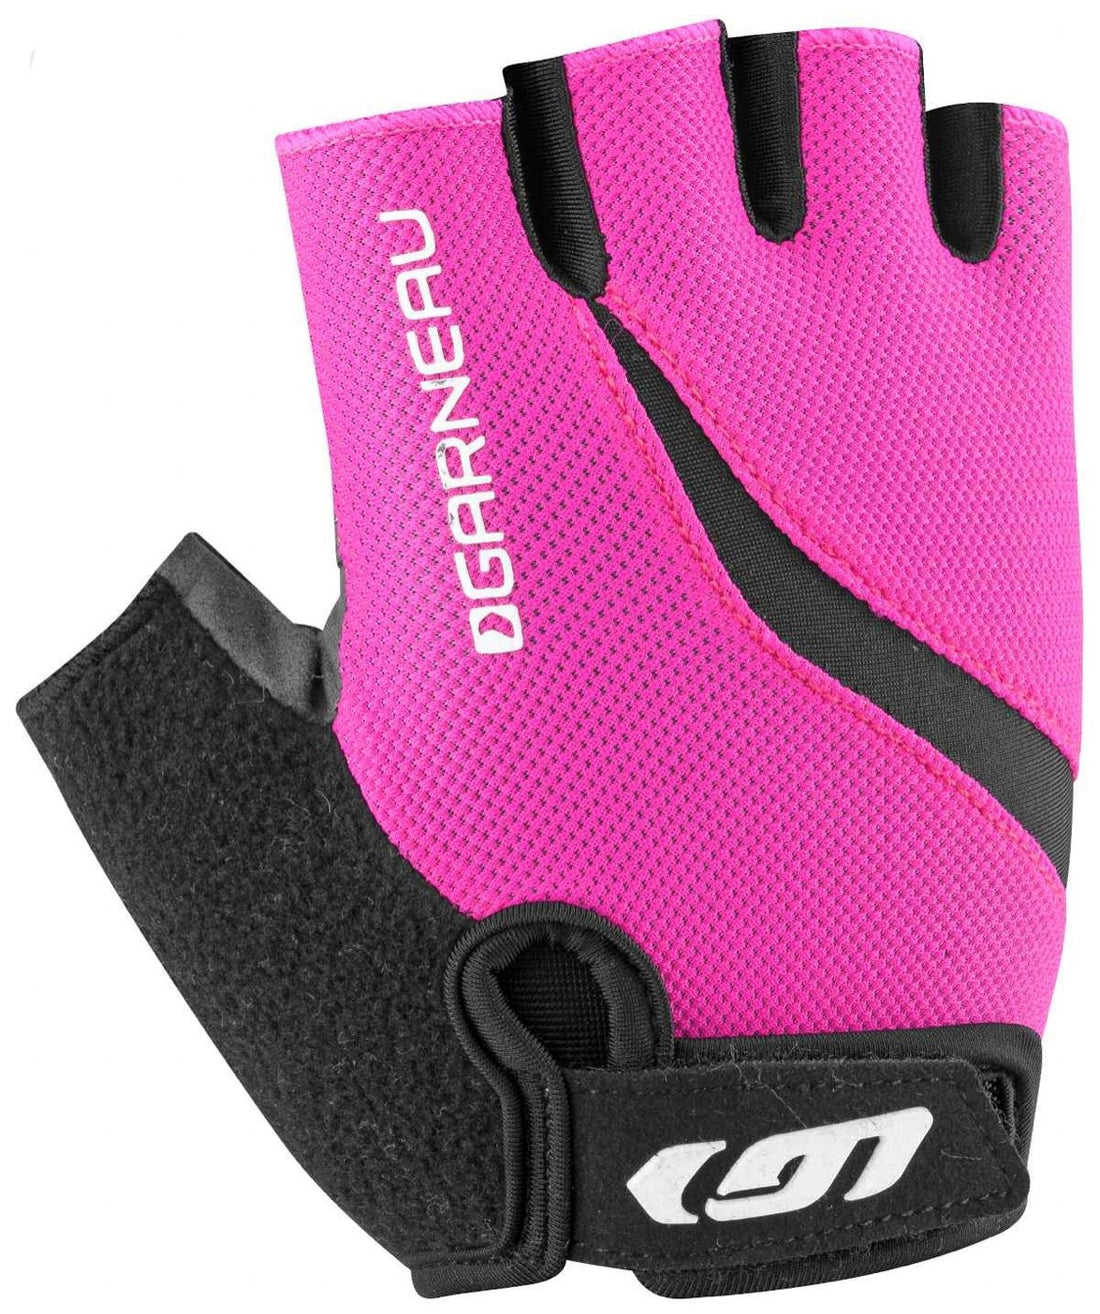 BIOGEL RX-V Cycling Gloves Women's Pink Large